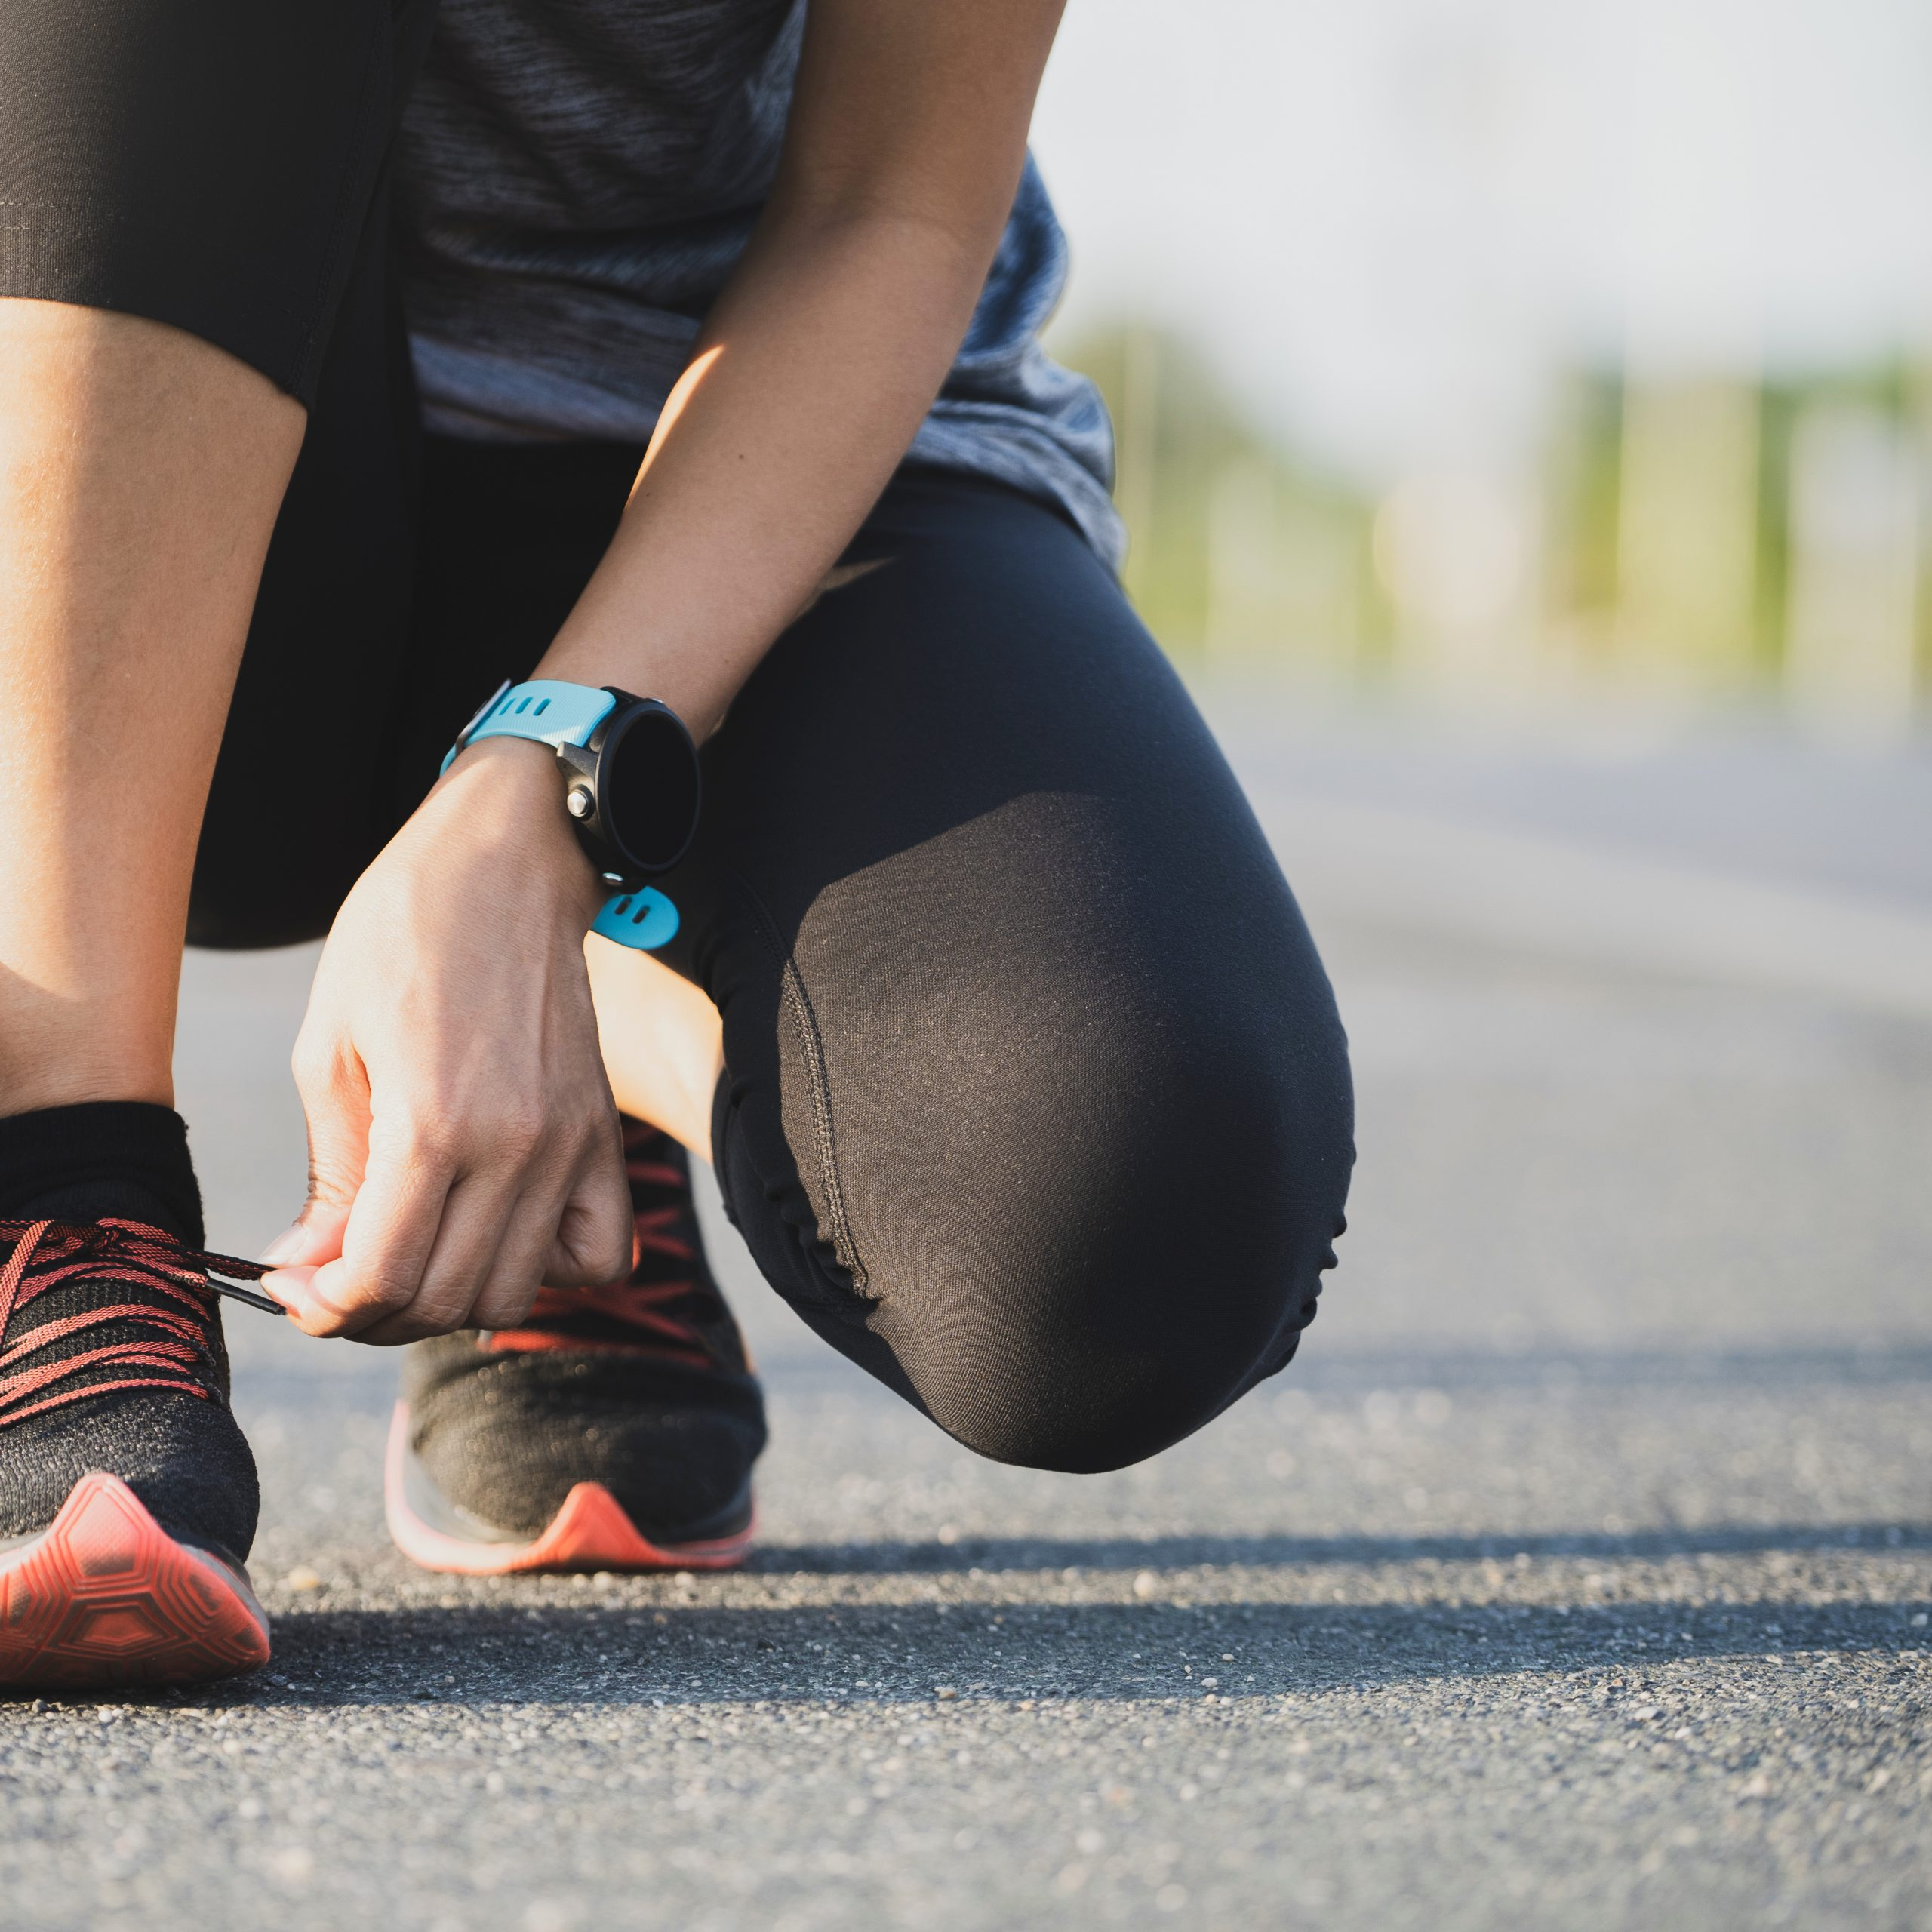 5 Tips on finding the best shoes for running